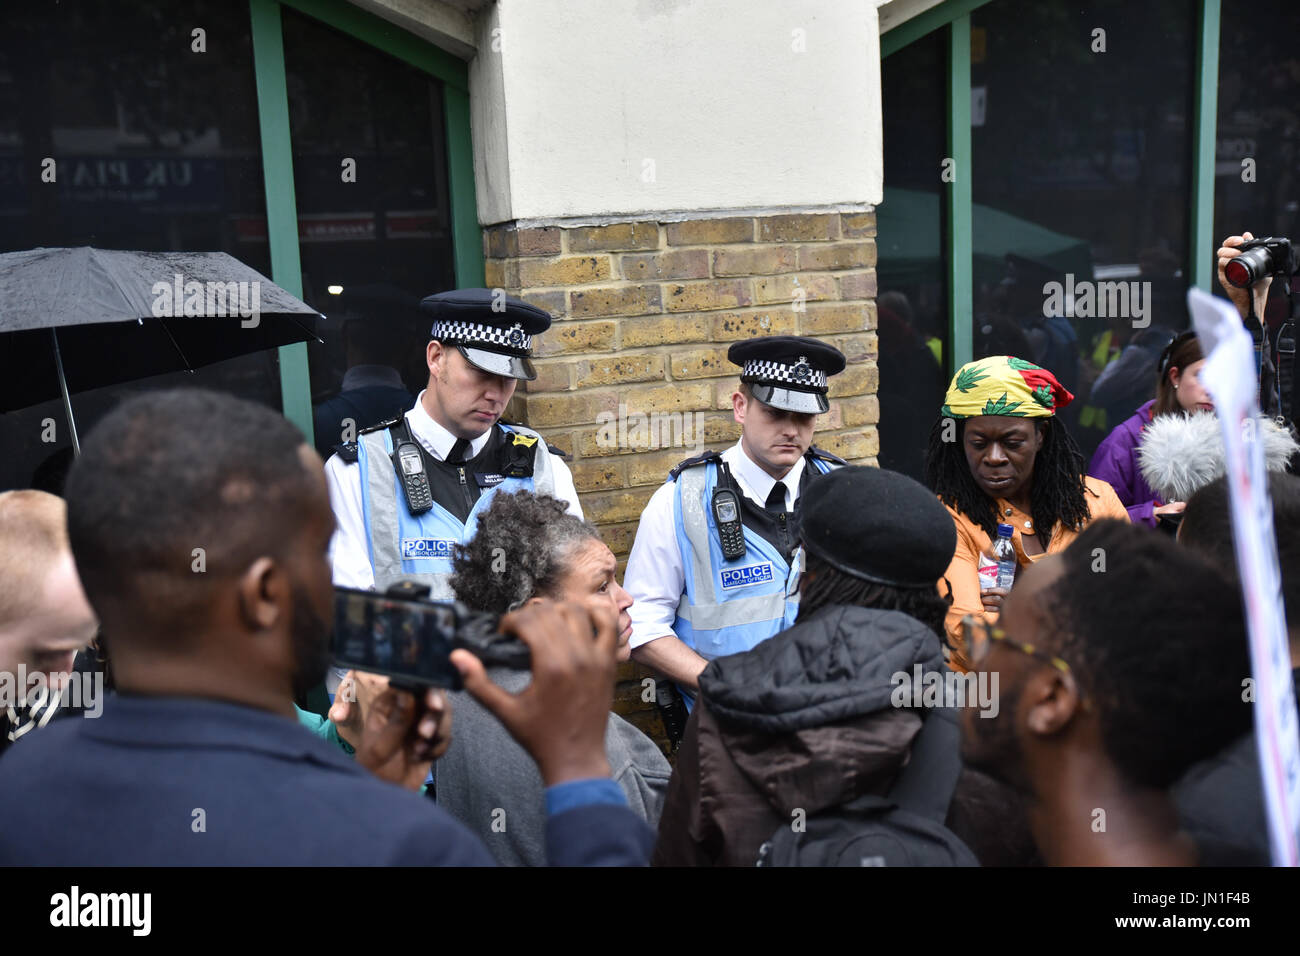 Stoke Newington, London, UK. 29th July, 2017. A vigil for Rashan Charles held outside Stoke Newington police station. Credit: Matthew Chattle/Alamy Live News - Stock Image